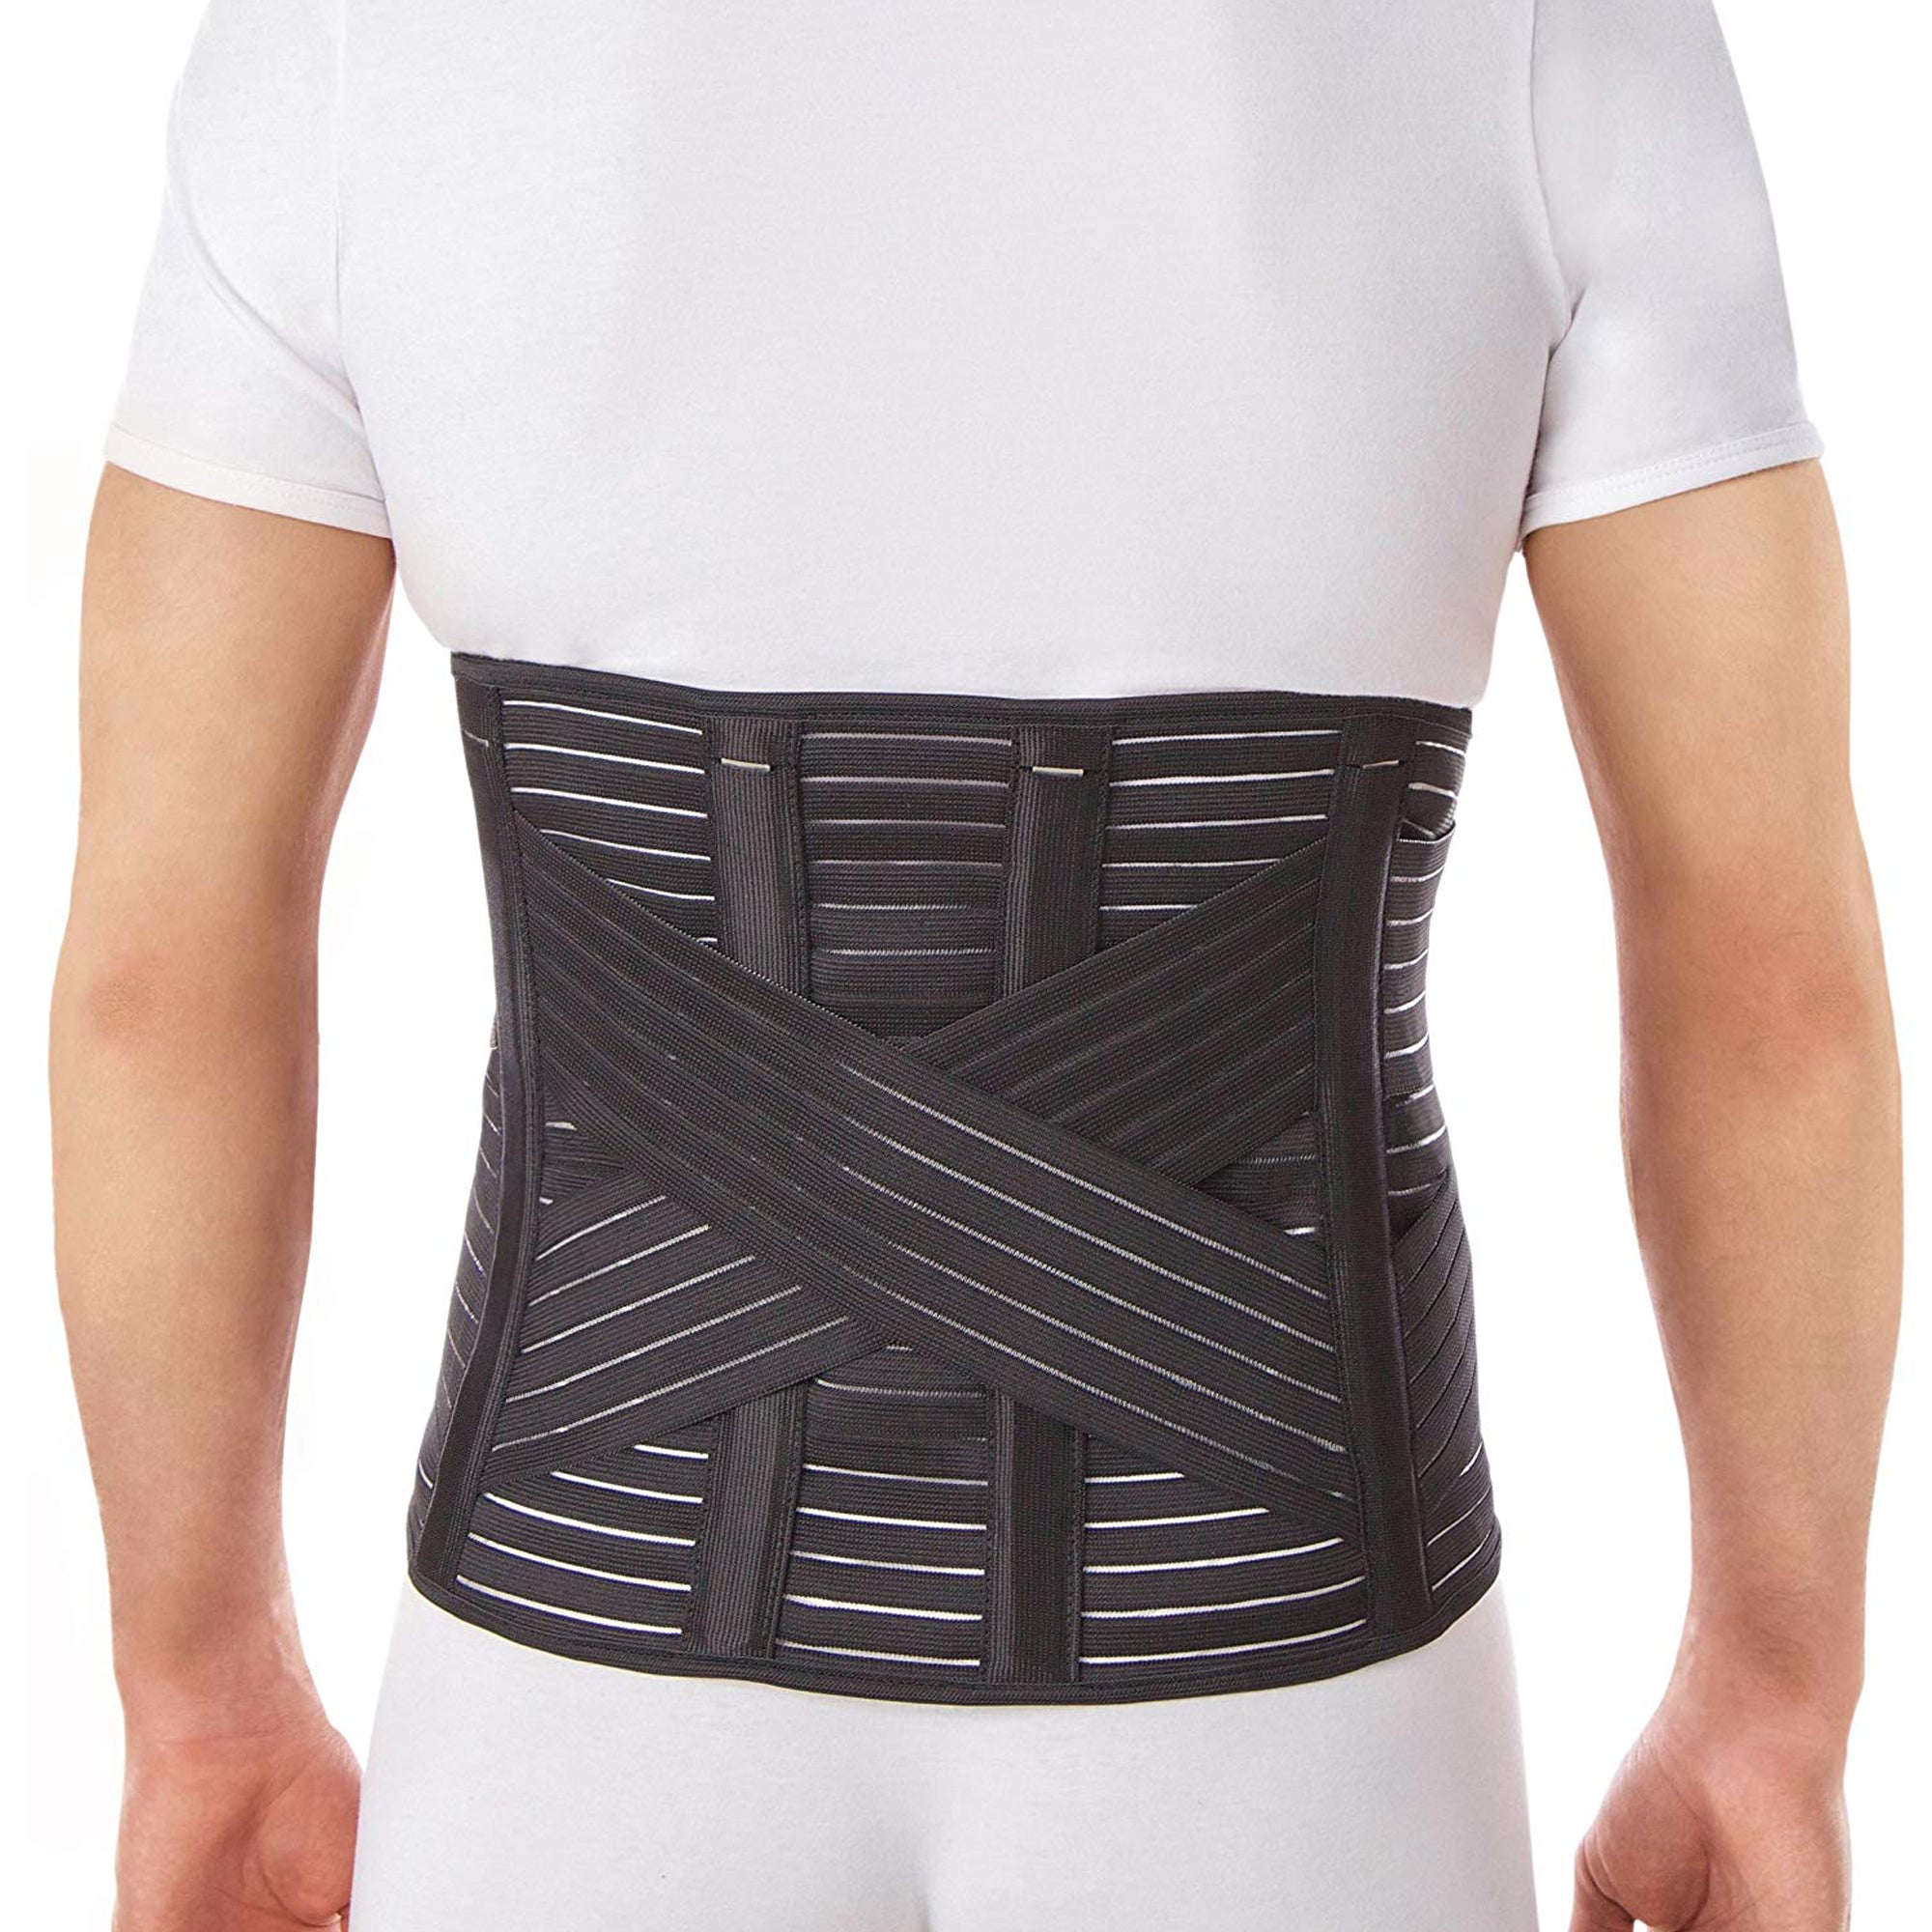 Lower Back Brace Lumbar Support Belt - Pain Relief and Correct Posture